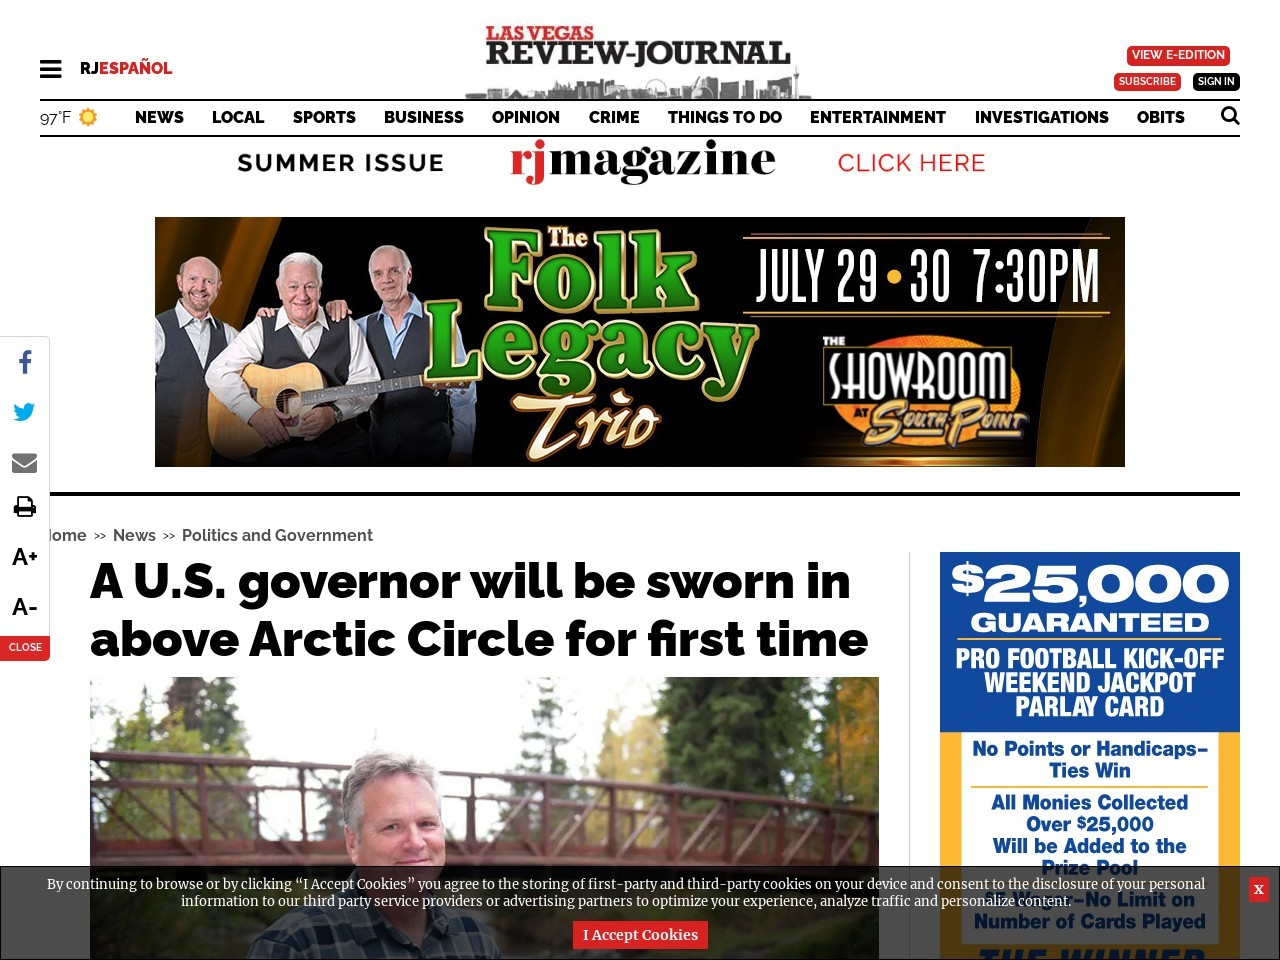 A U.S. governor will be sworn in above Arctic Circle for first time